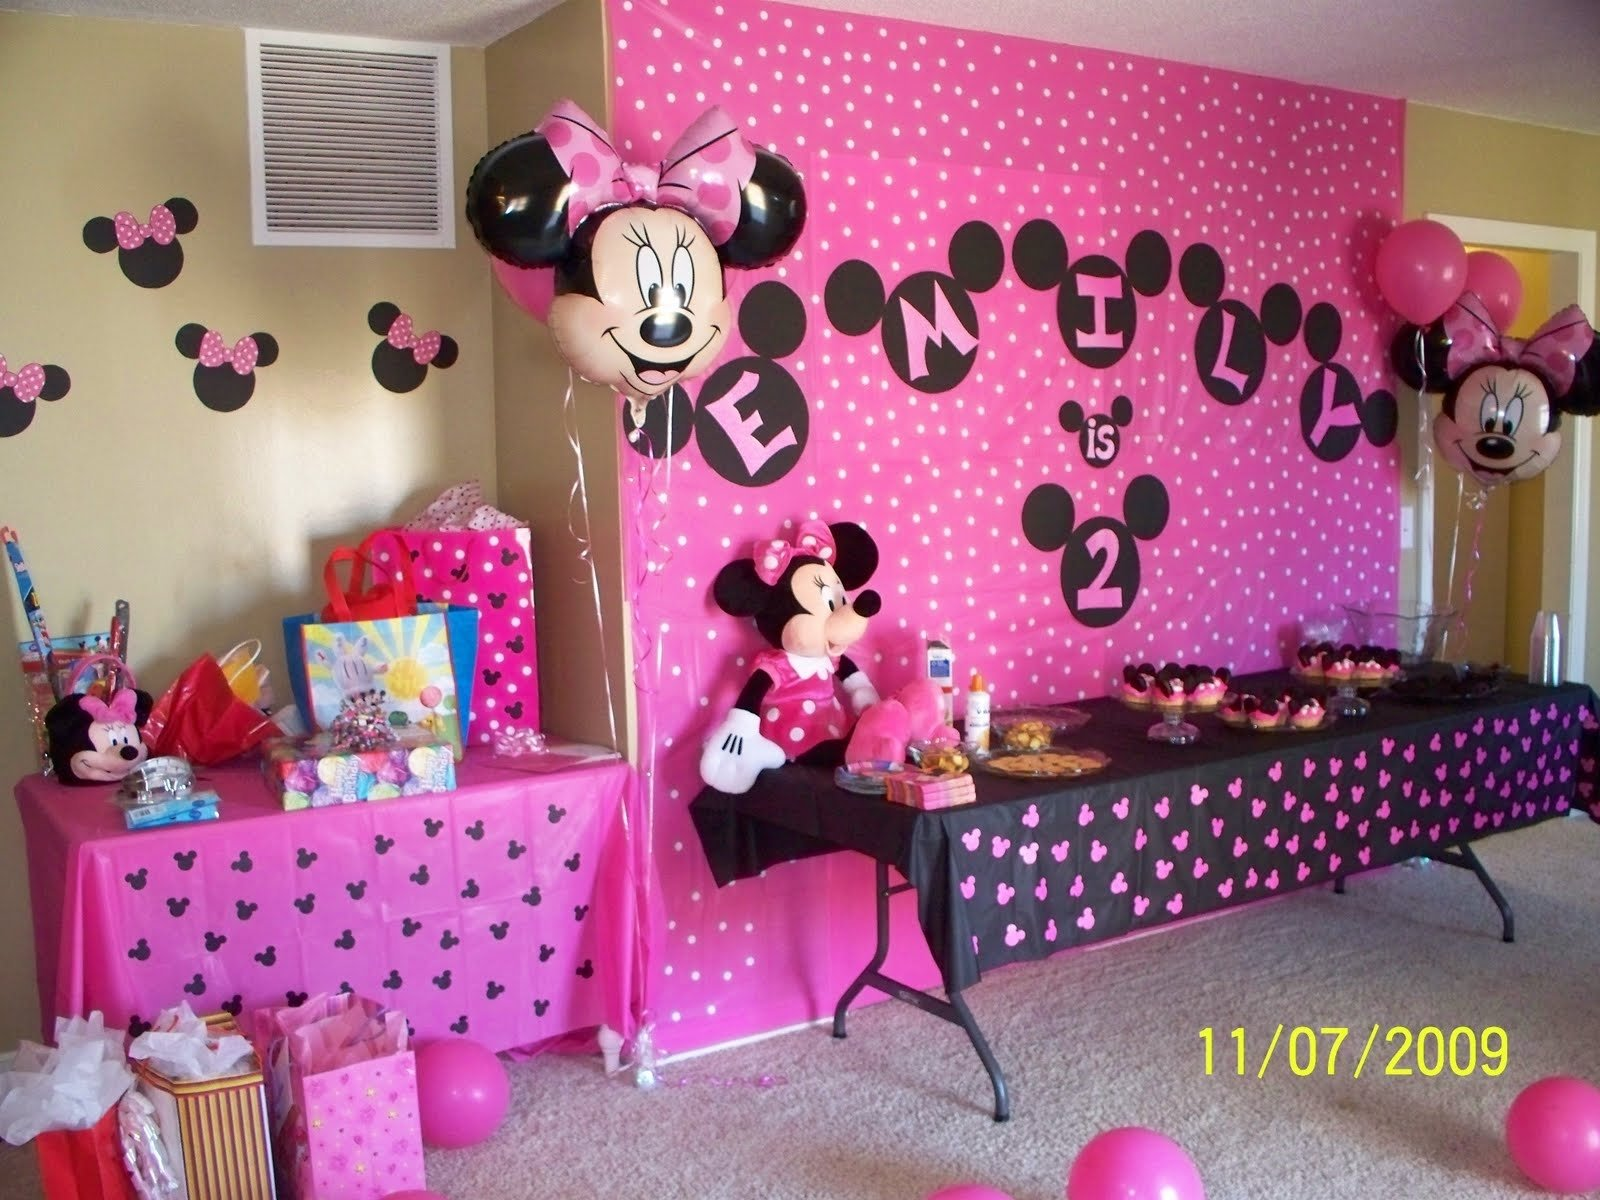 10 Fashionable Baby Minnie Mouse 1St Birthday Party Ideas birthday parties for girls september 2011 2